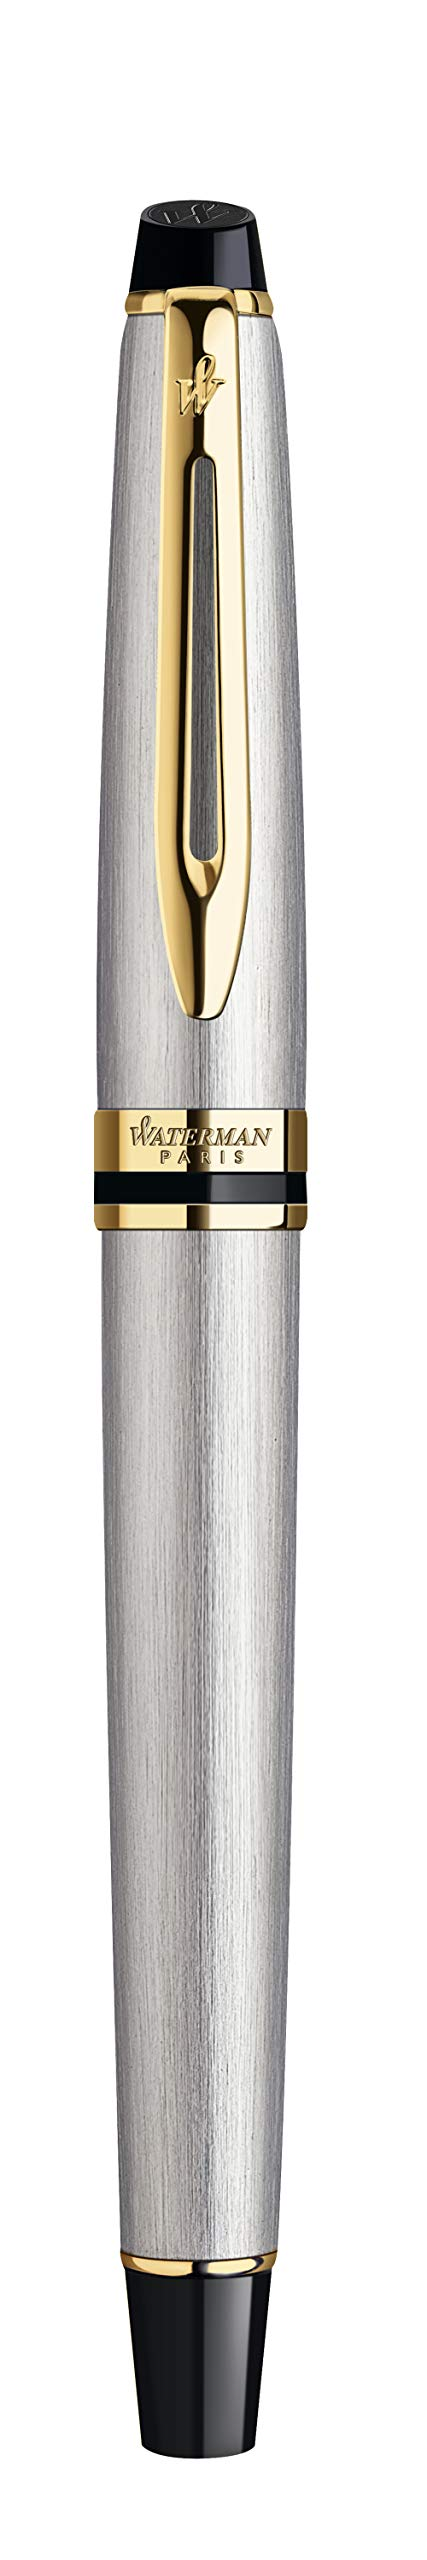 Waterman Expert Fountain Pen Stainless Steel with Golden Trim, Fountain Pen with Fine nib and Blue ink (S0951940) by Waterman (Image #6)